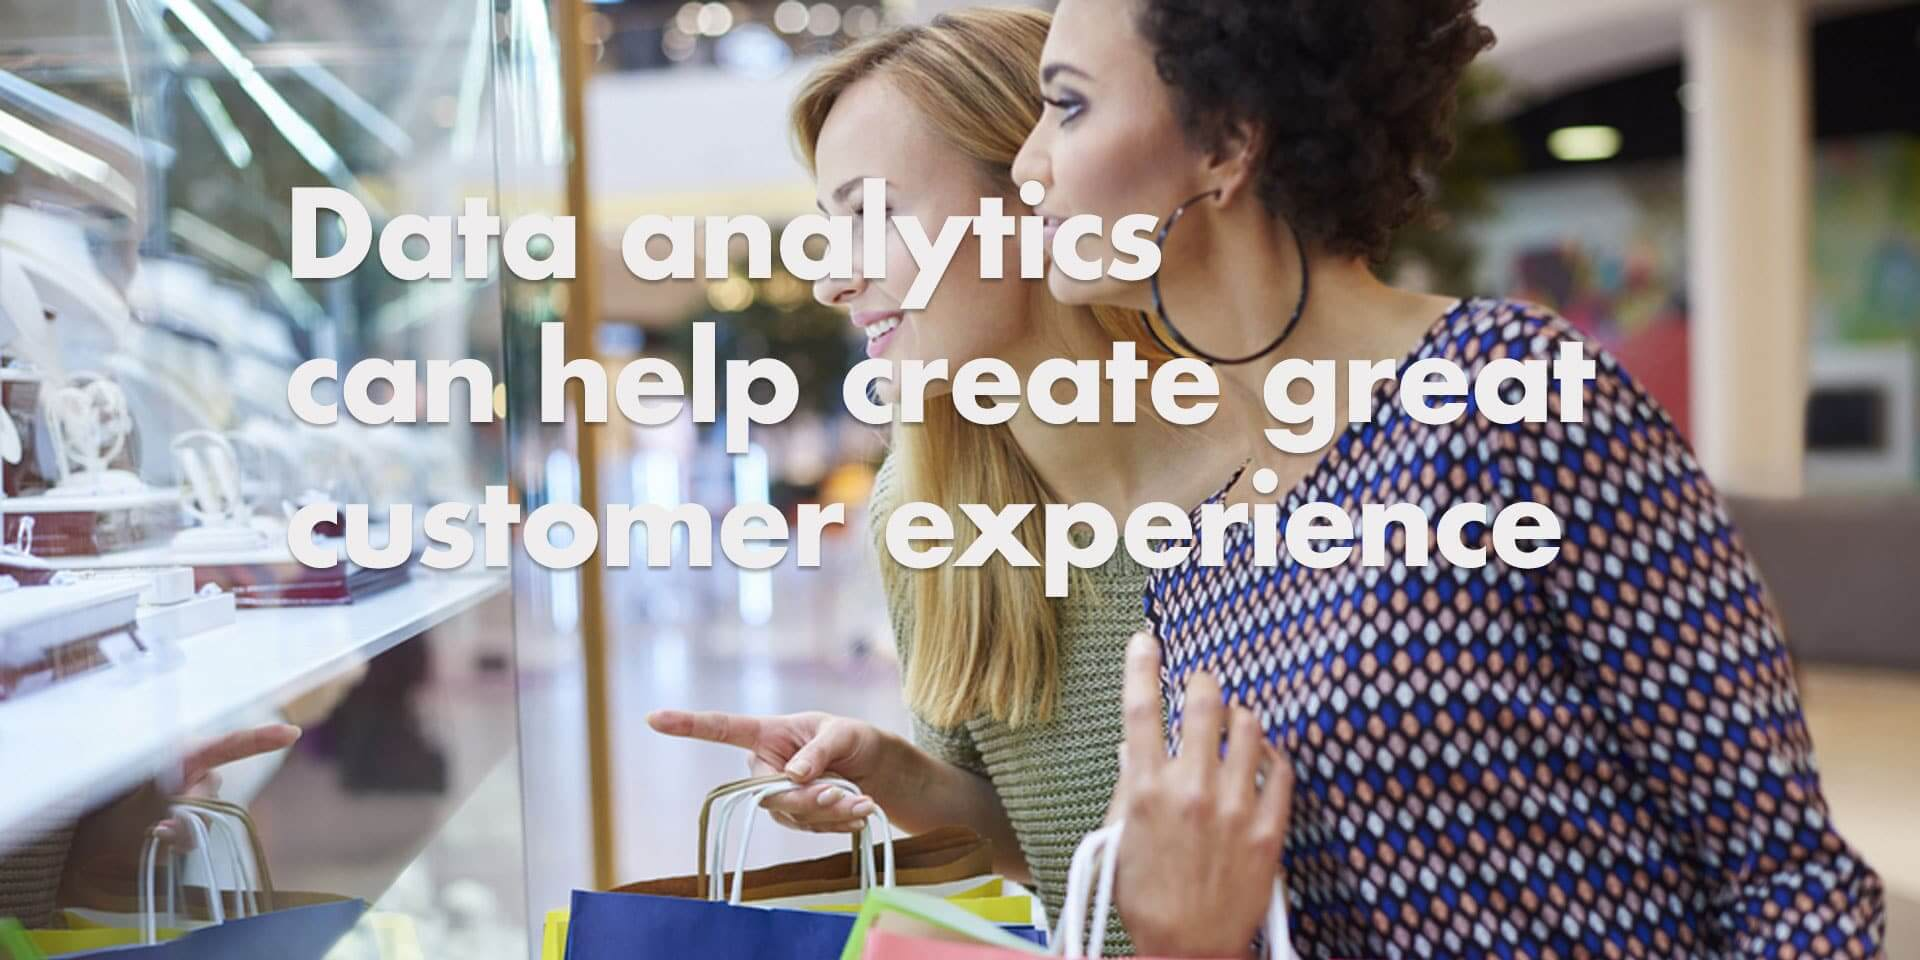 Customer Experience based on Data Analytics